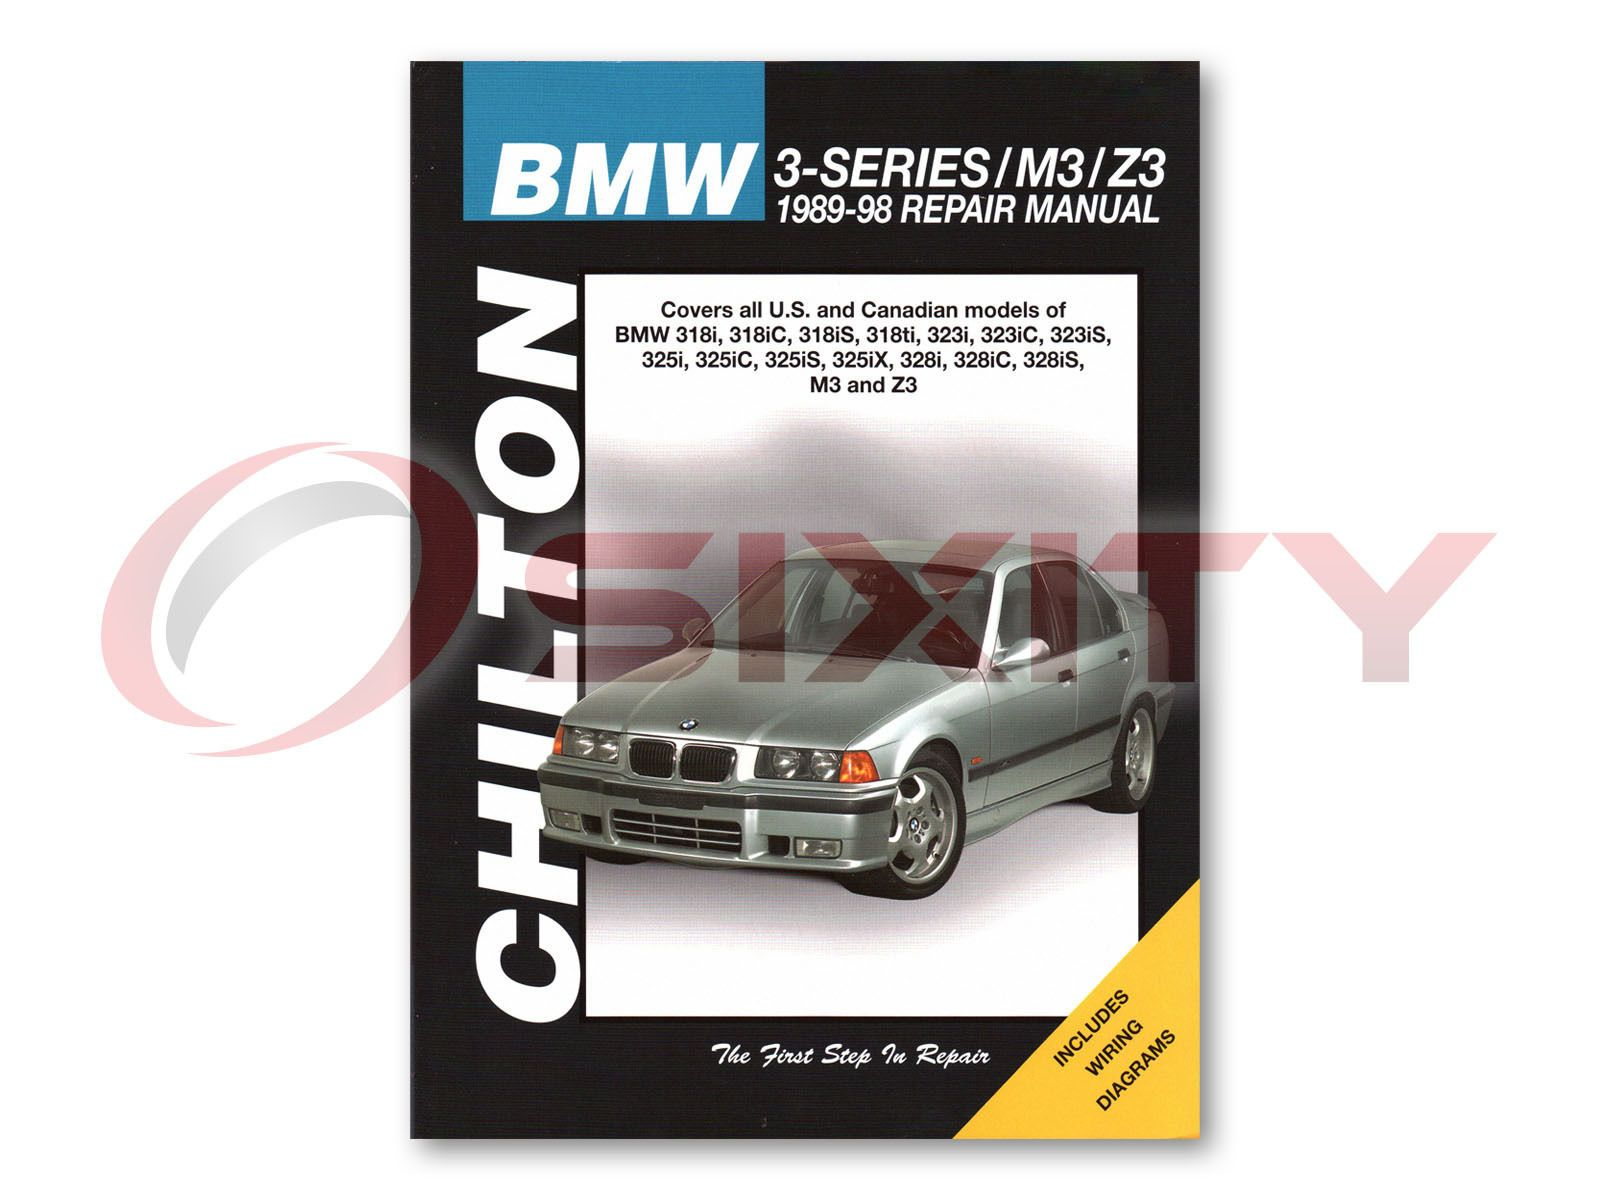 ManualsPRO - BMW Z3 Chilton Repair Manual Roadster Shop Service Garage  Bookrm https://